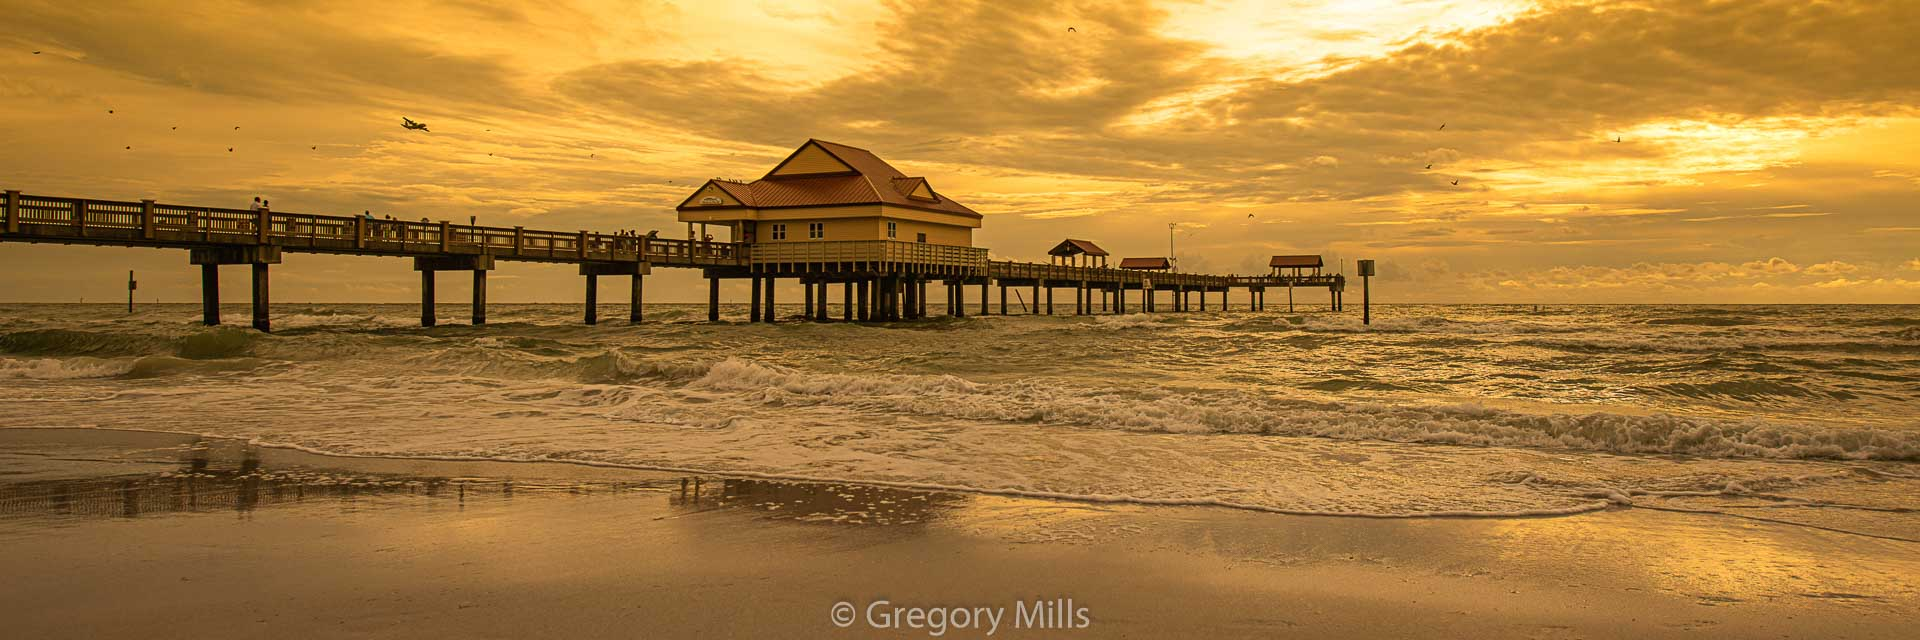 Photography by Gregory Mills of a Sunset at Clearwater Beach Pier 60